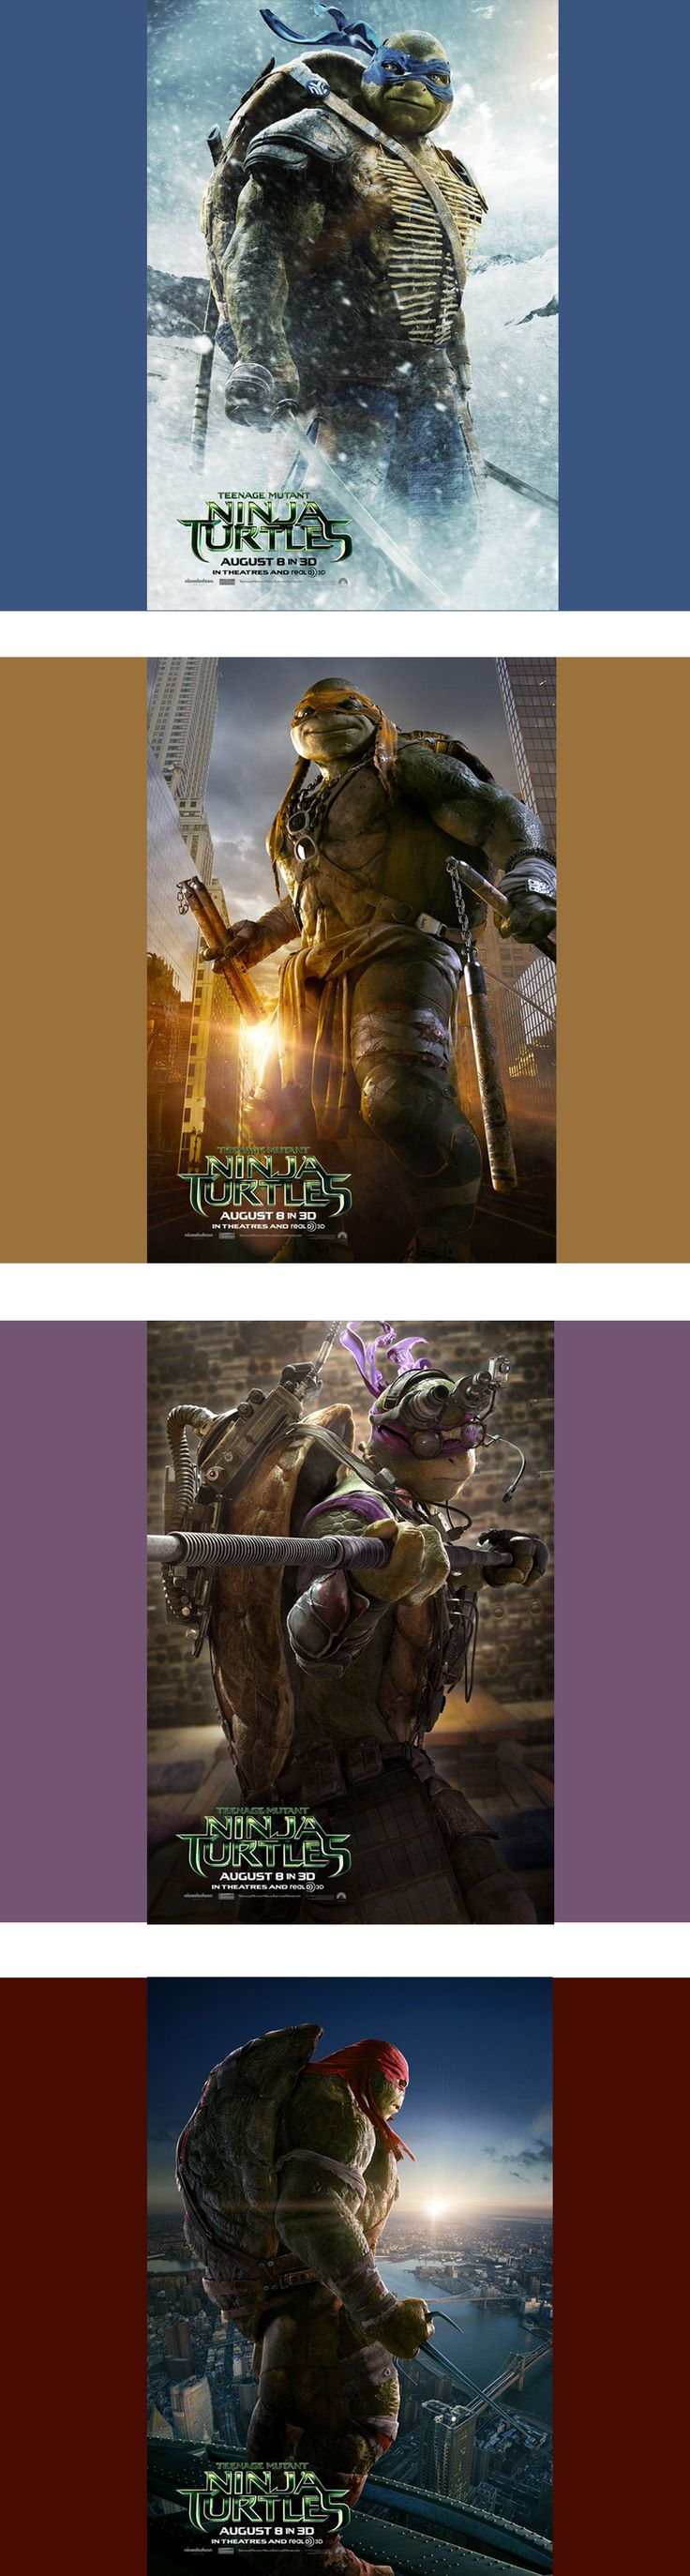 New #TMNT Movie posters. -- DONATELLO SHOULD NOT HAVE GLASSES!!!!!!! But I'm not obsessing over that.